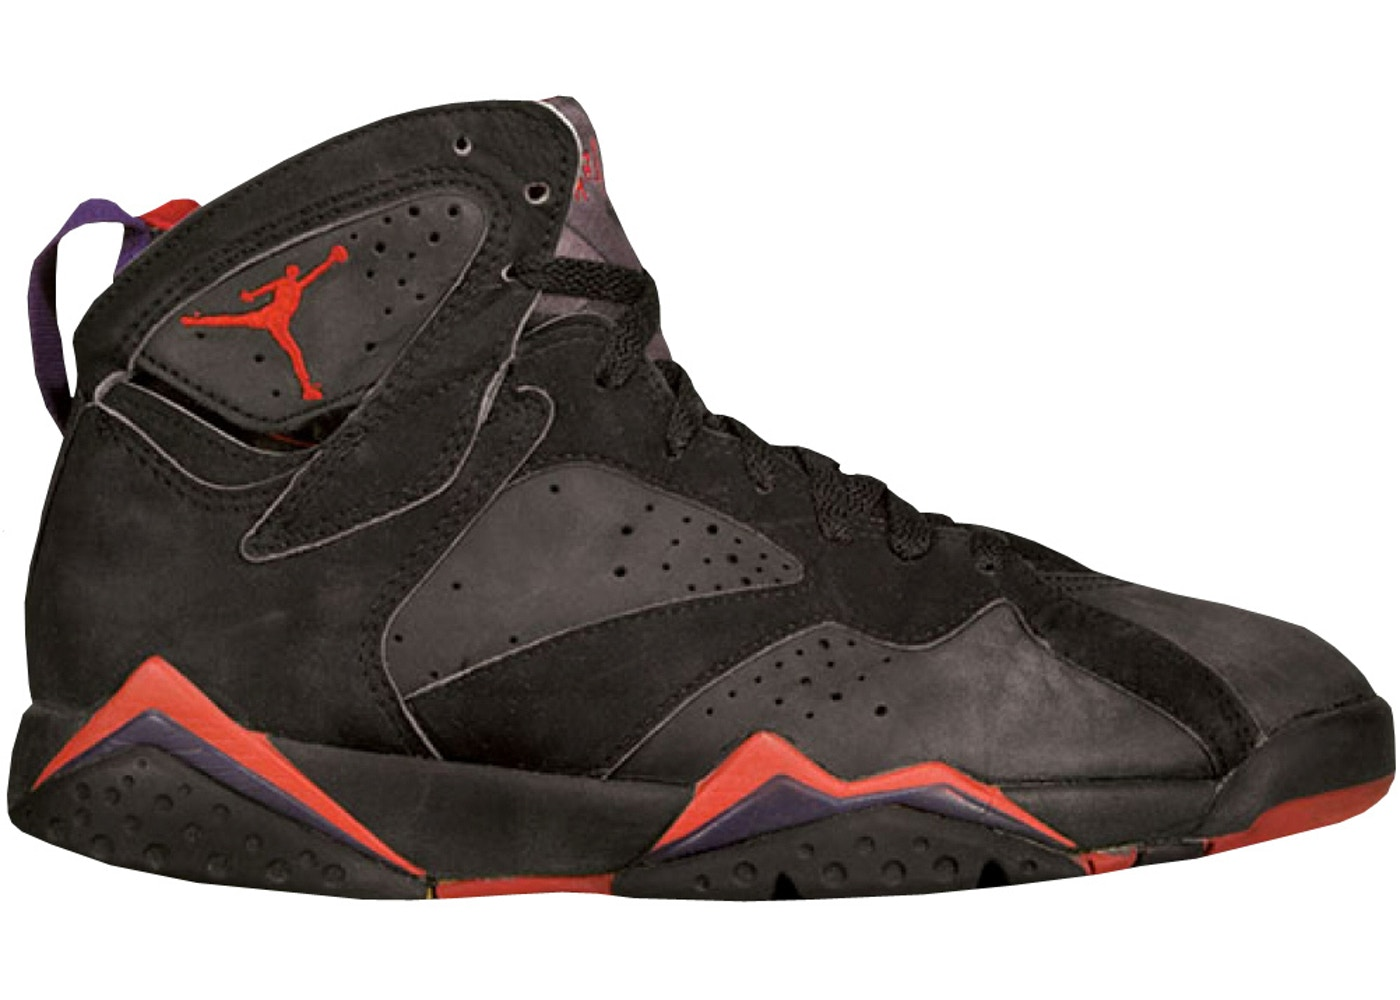 huge selection of b1022 4fe4e Buy Air Jordan 7 Size 4 Shoes   Deadstock Sneakers